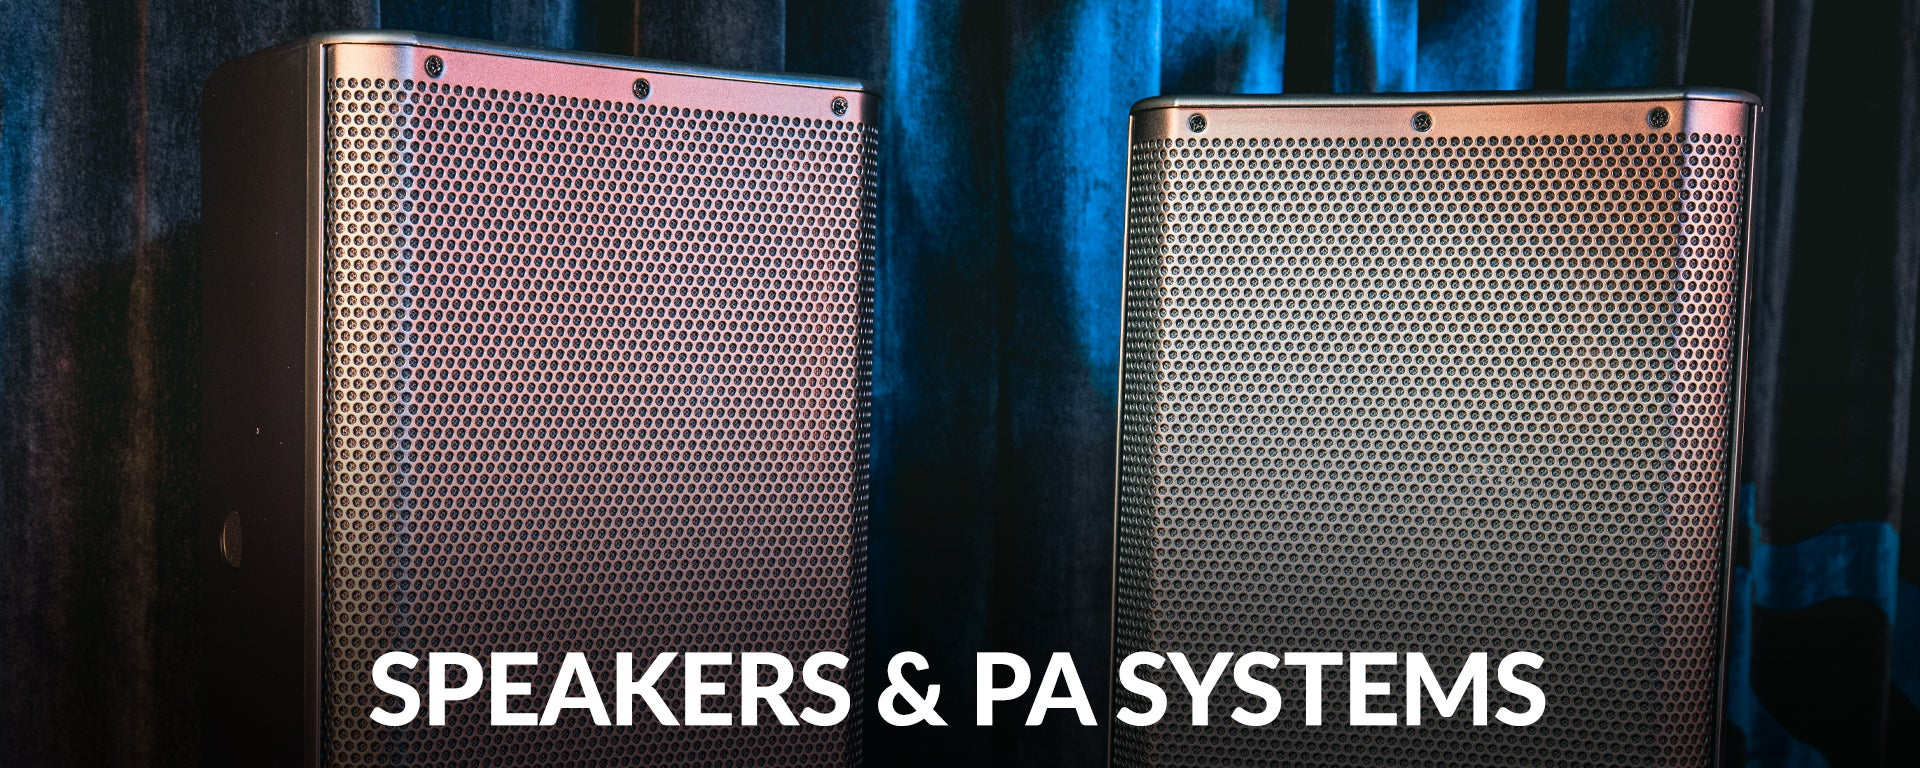 Shop the best selection of Speakers and PA Systems at SamAsh.com and get the lowest price and fast, free shipping.